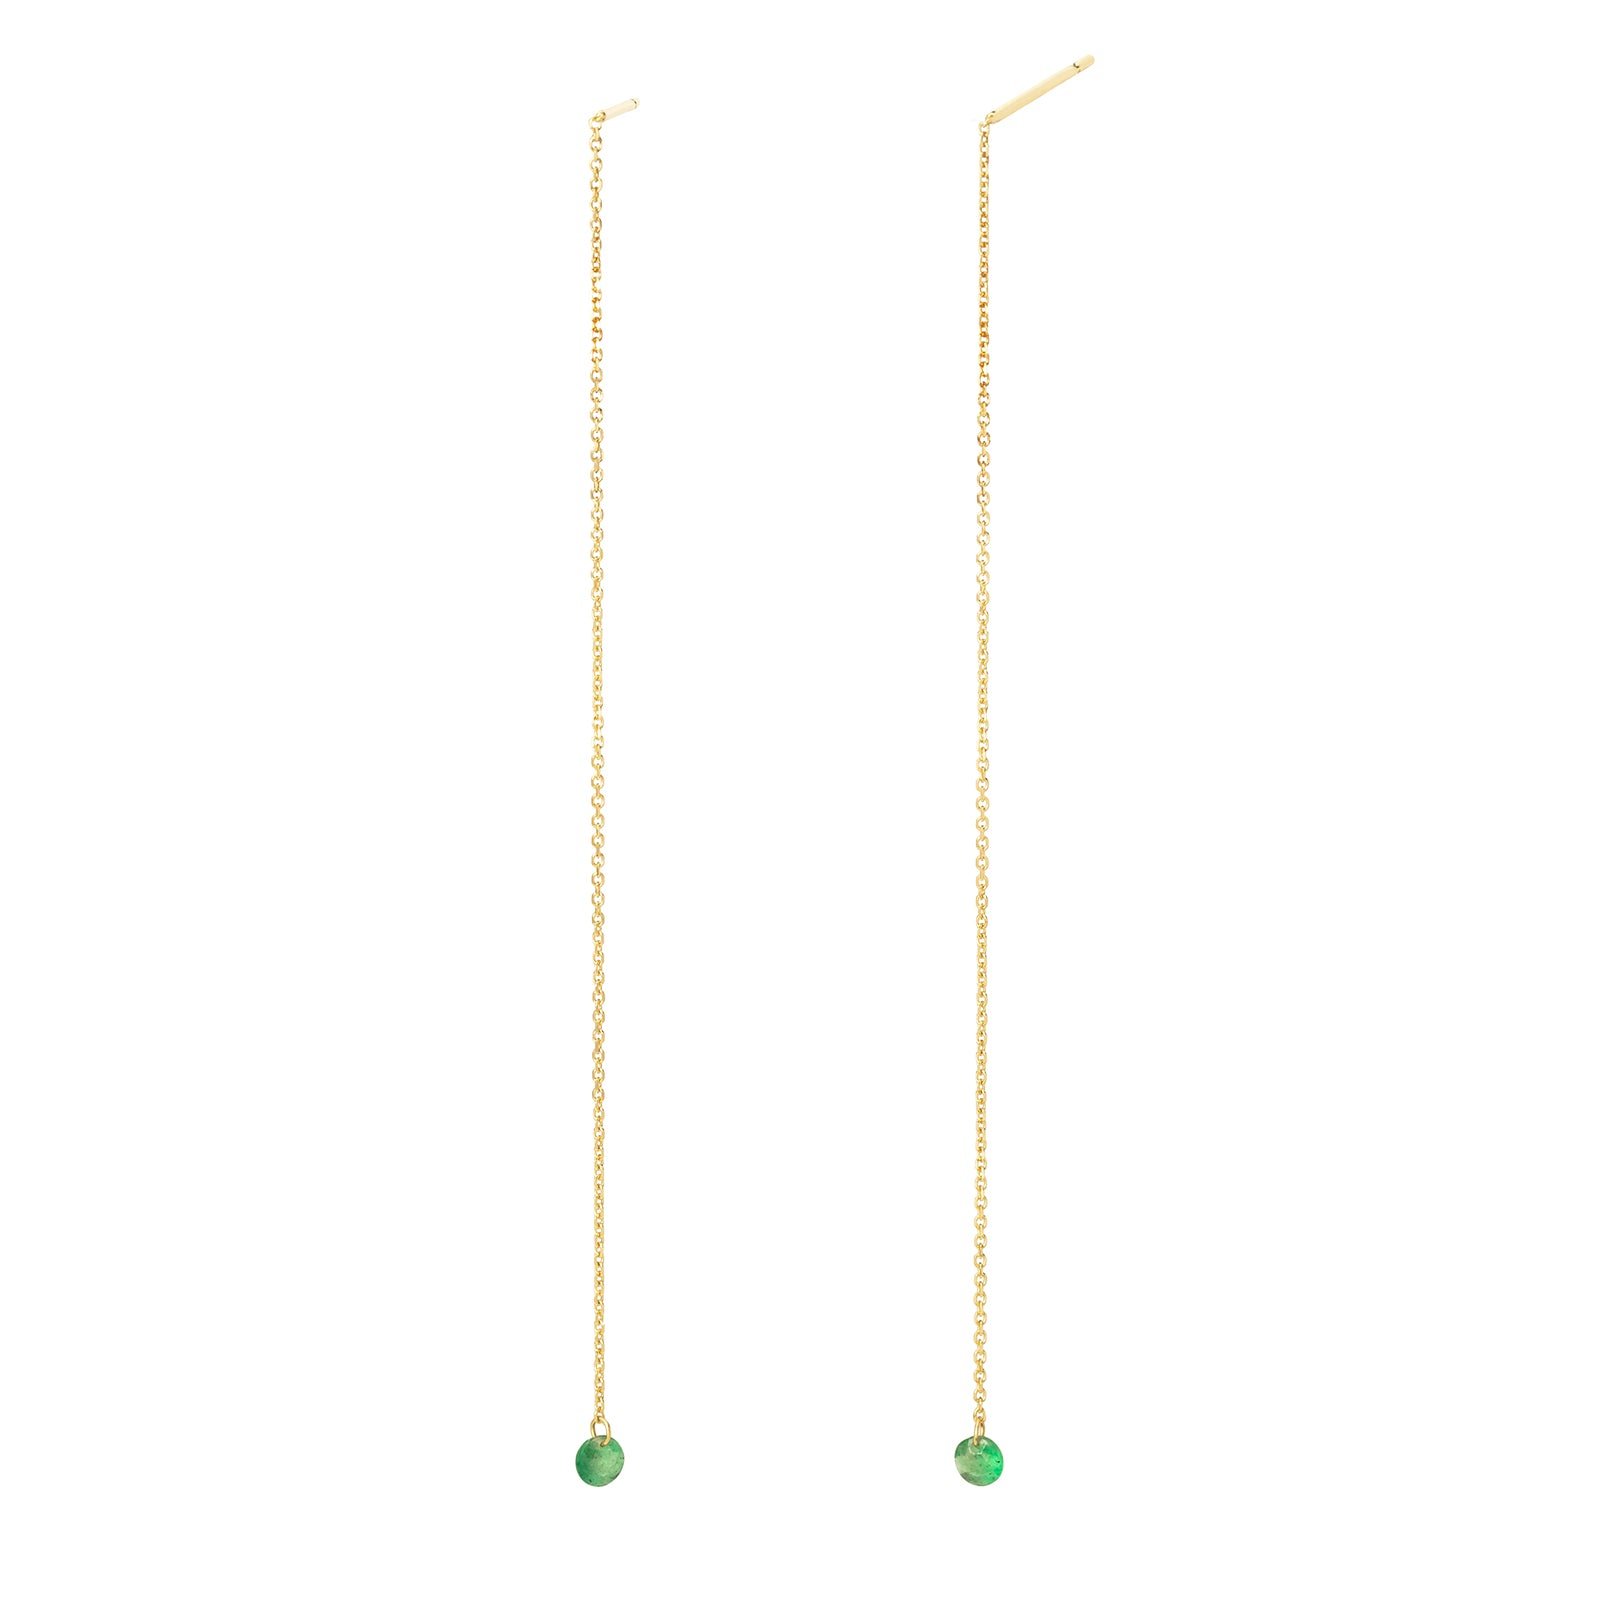 Persée Paris Chain Emerald Drop Earrings - Yellow Gold - Earrings - Broken English Jewelry